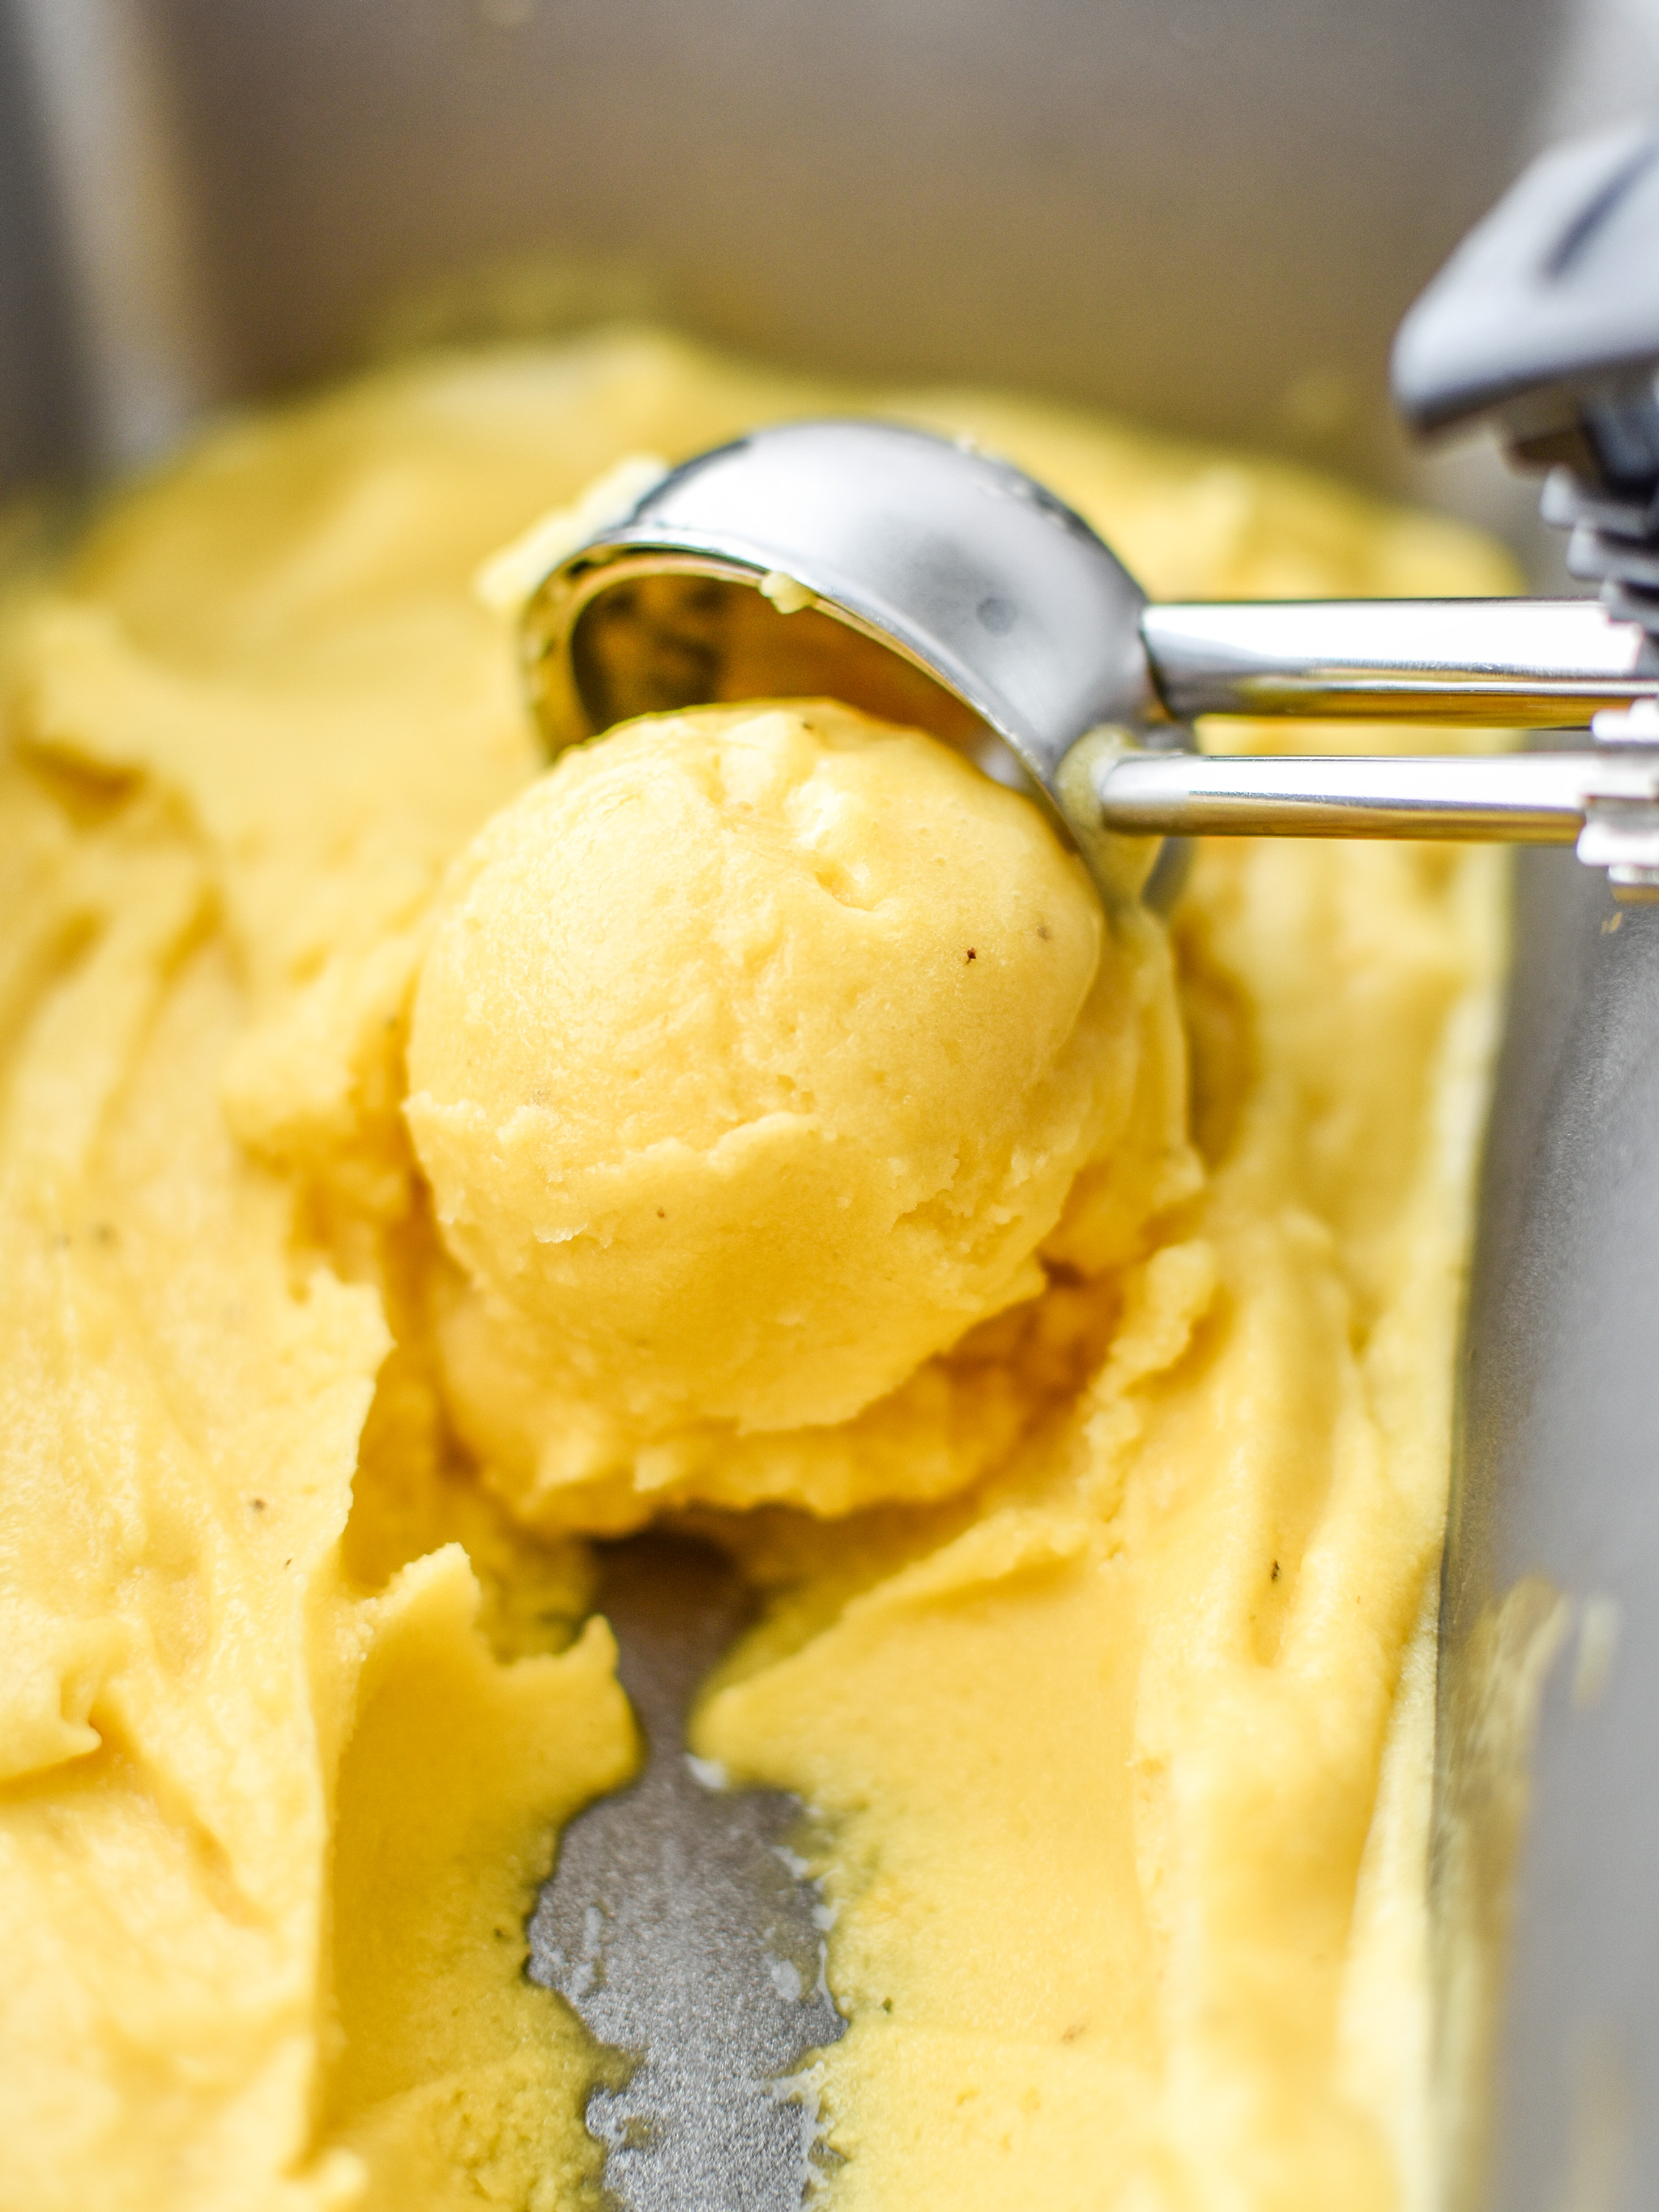 Scooping up some Mango Lime Nice Cream